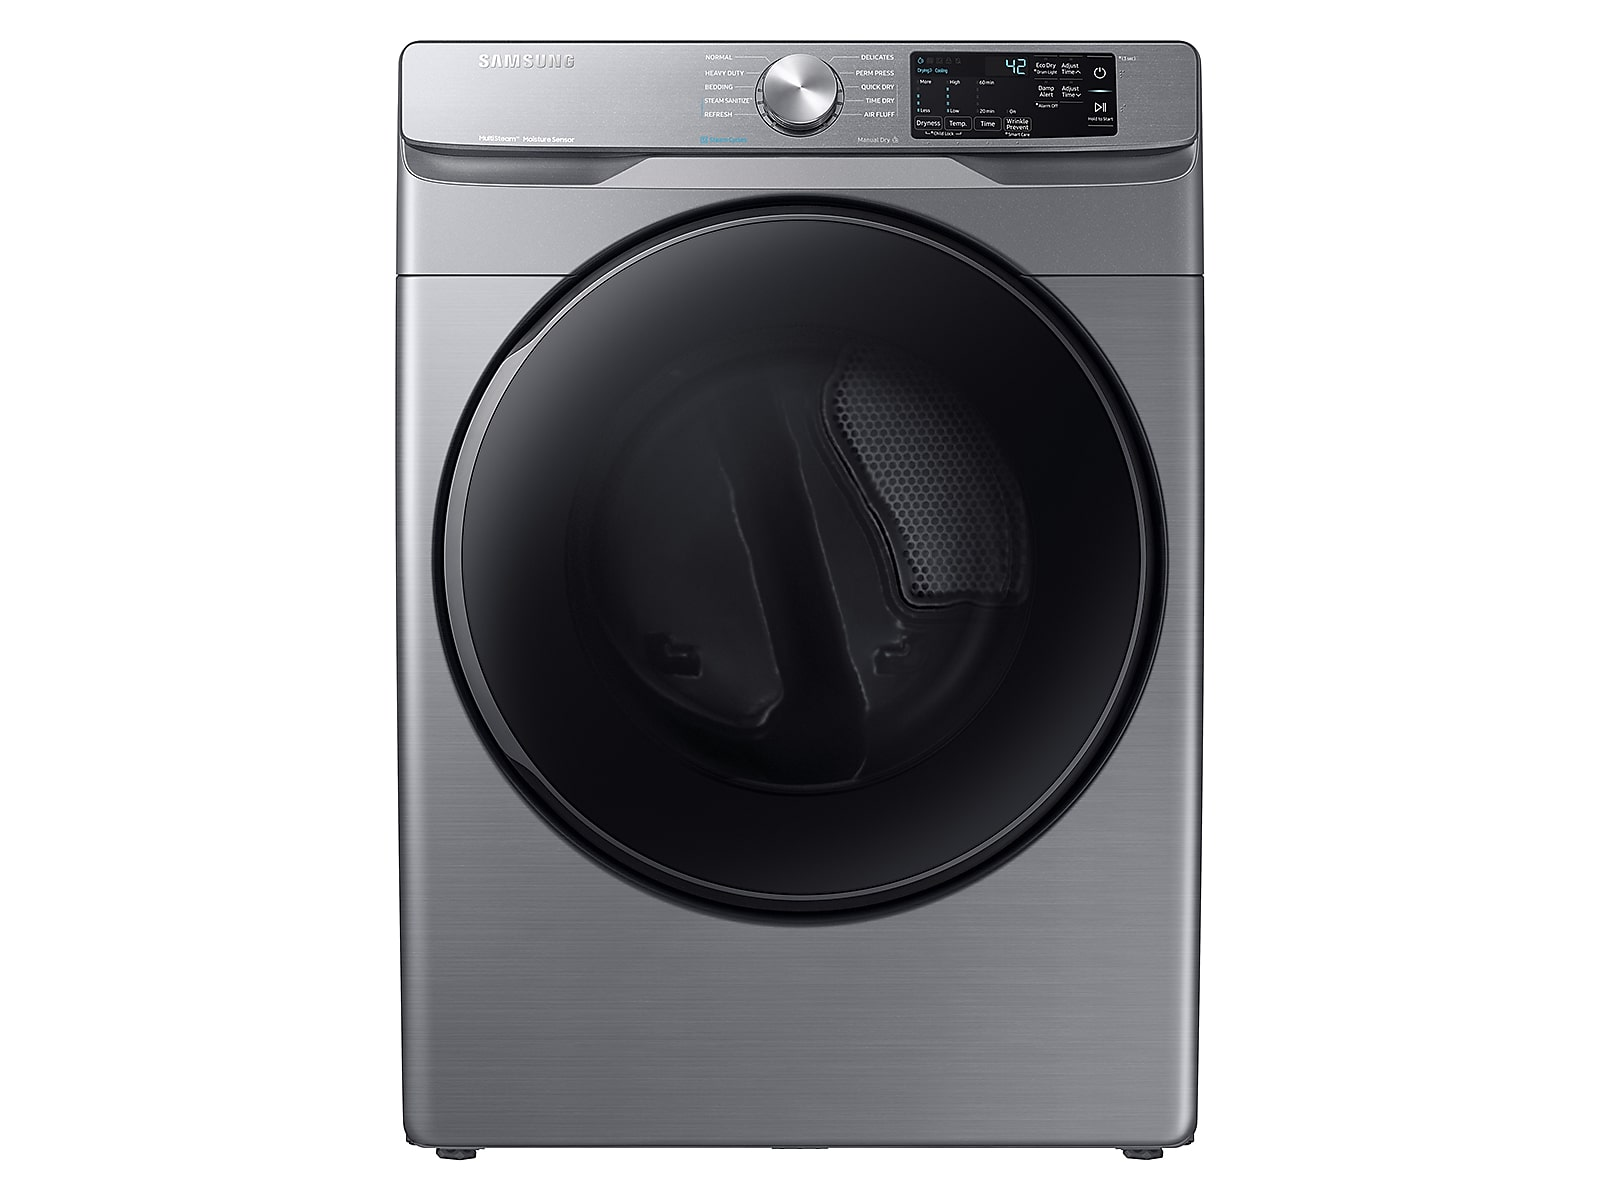 Samsung coupon: Samsung 7.5 cu. ft. Electric Dryer with Steam Sanitize+ in Platinum(DVE45R6100P/A3)